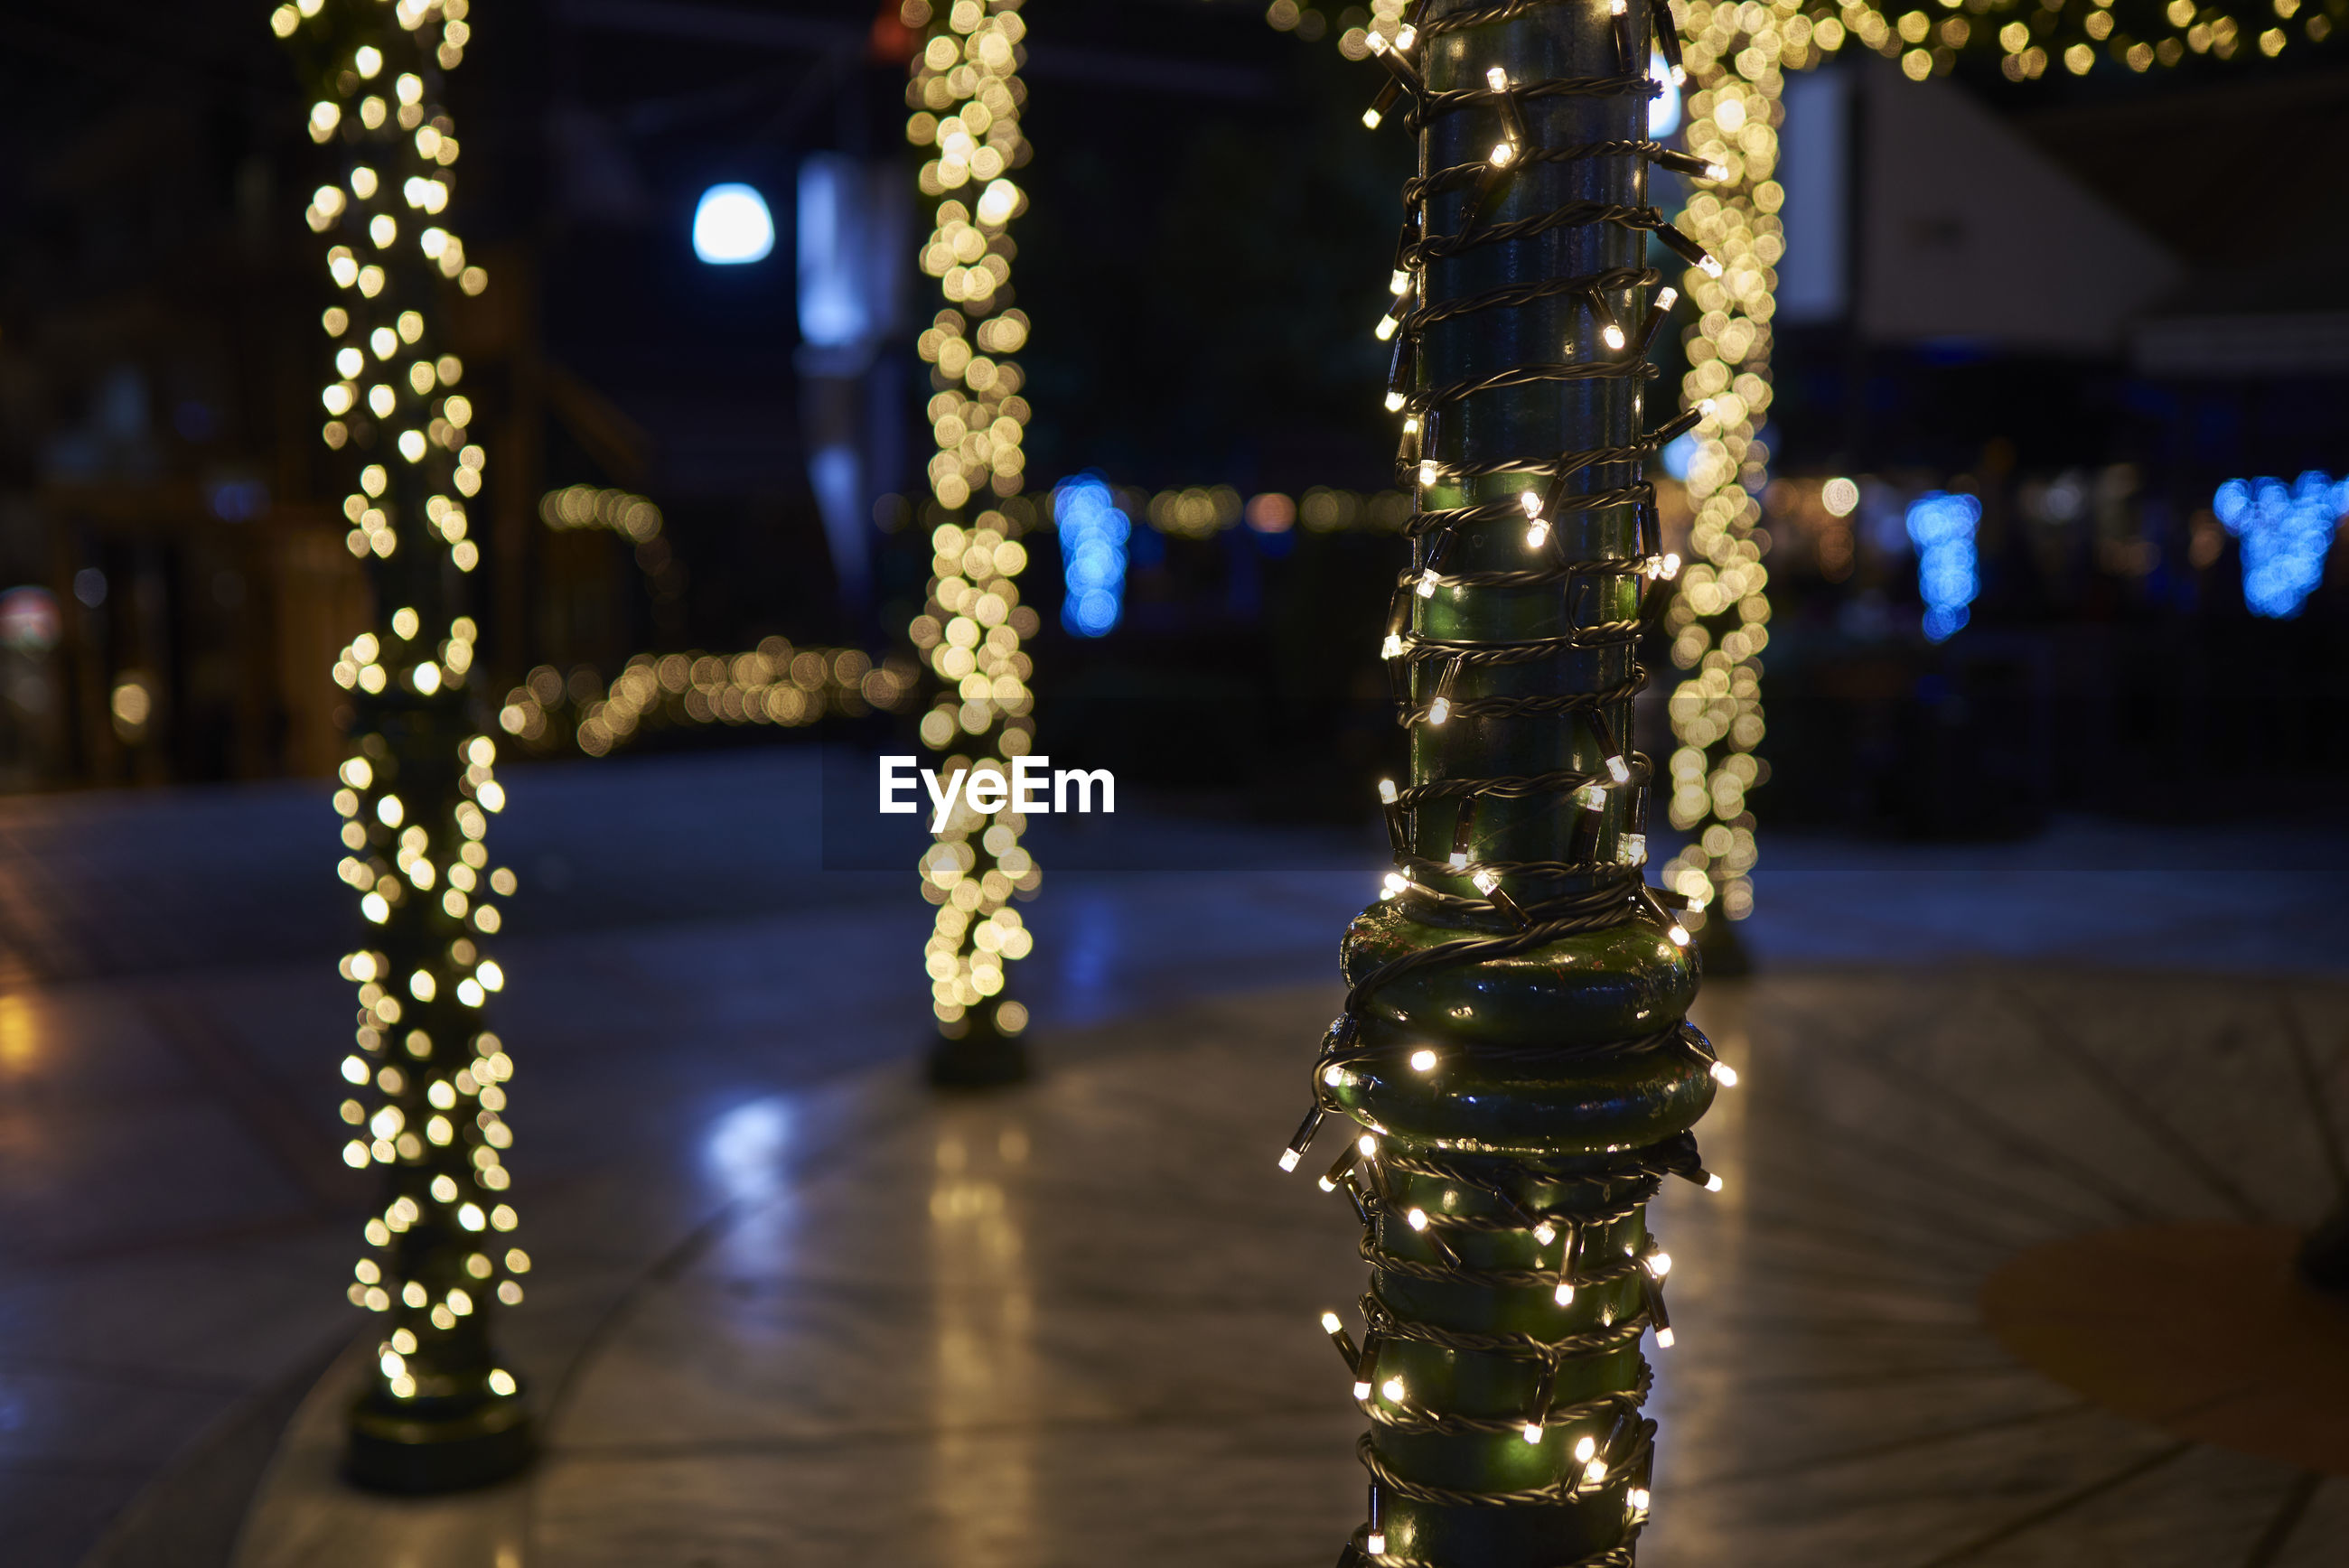 Christmas decorations in city at night